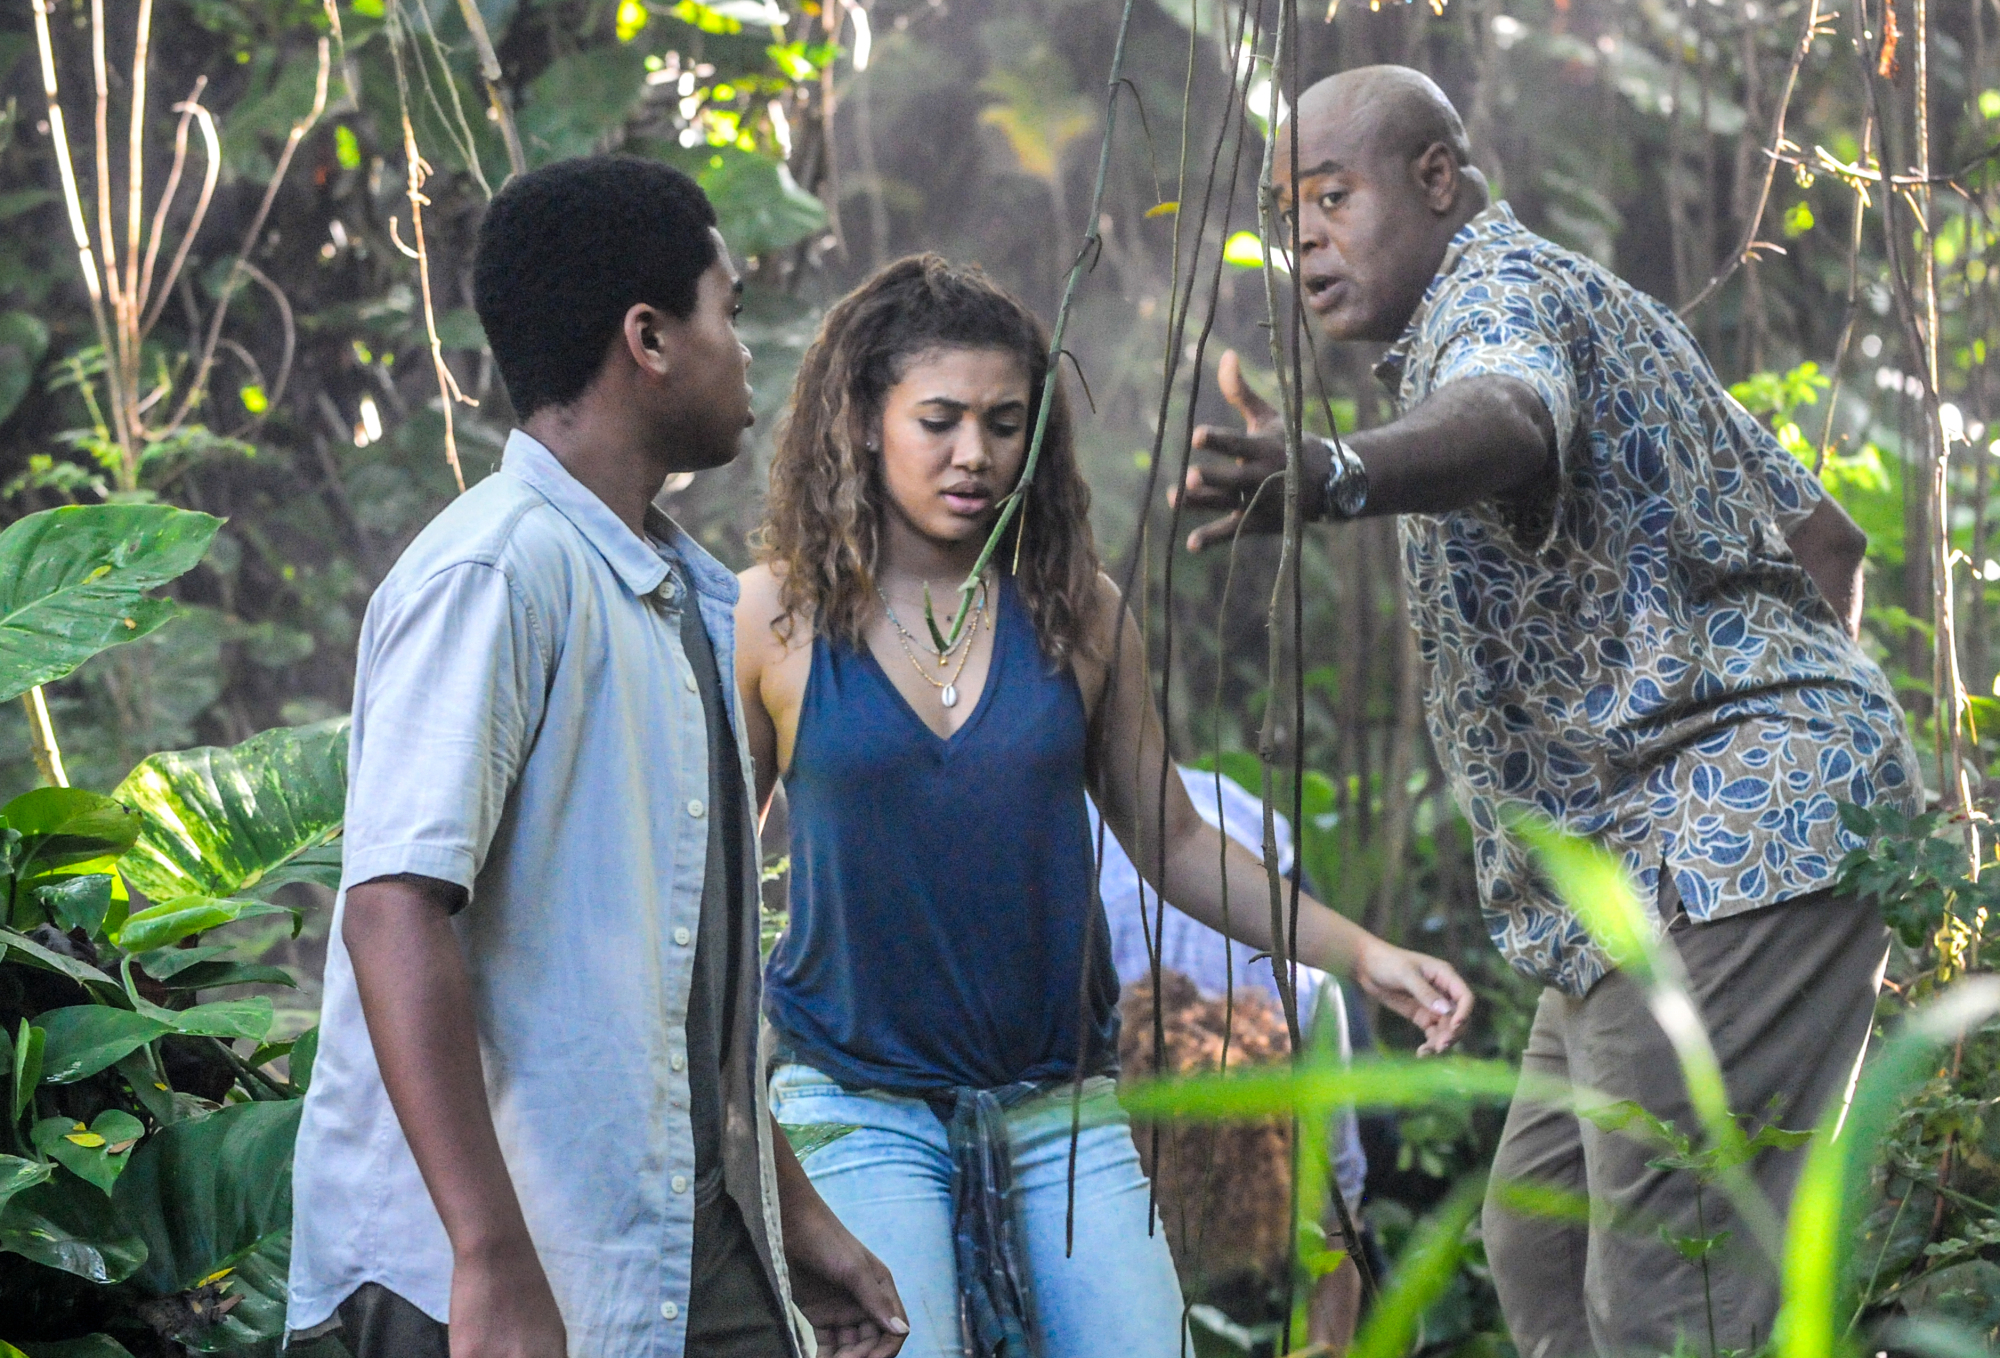 Chosen Jacobs as Will Grover, Paige Hurd as Samantha Grover, and Chi McBride as Lou Grover